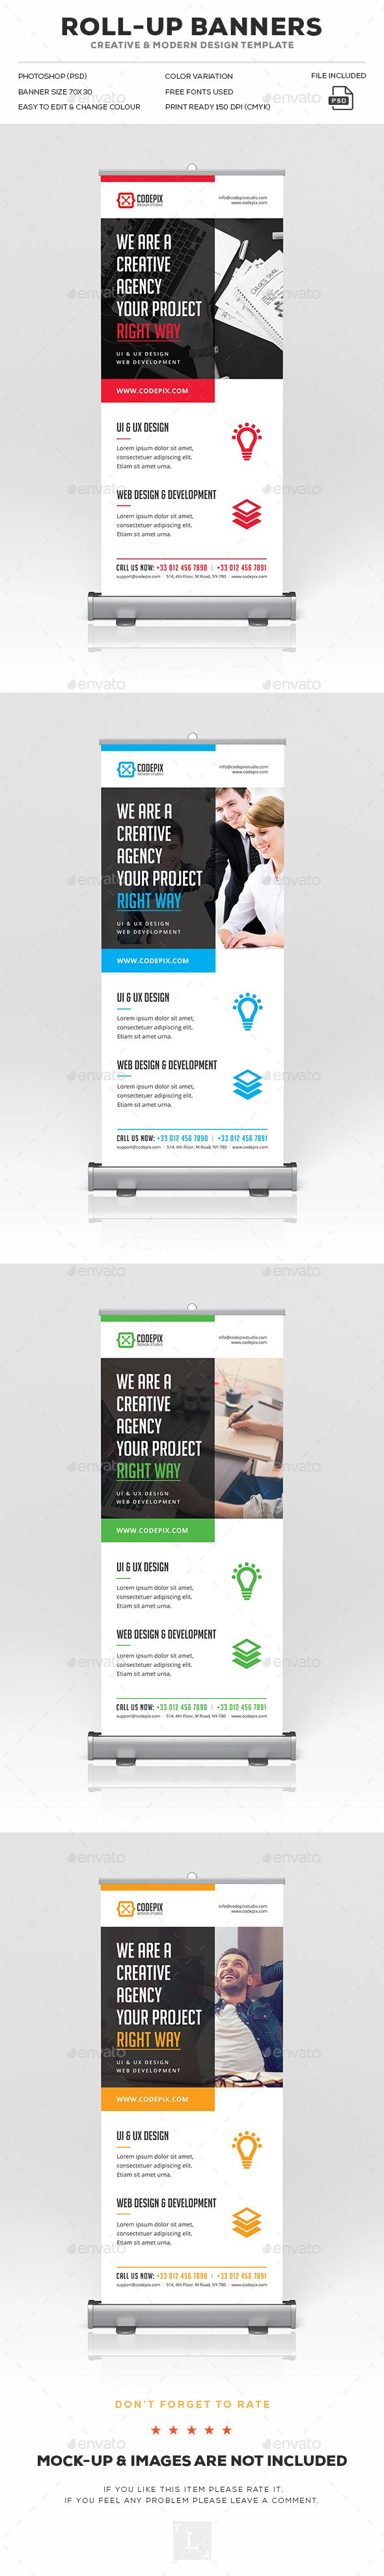 Roll-Up Banner Template PSD. Download here: https://graphicriver.net/item/rollup-banner/17043453?ref=ksioks